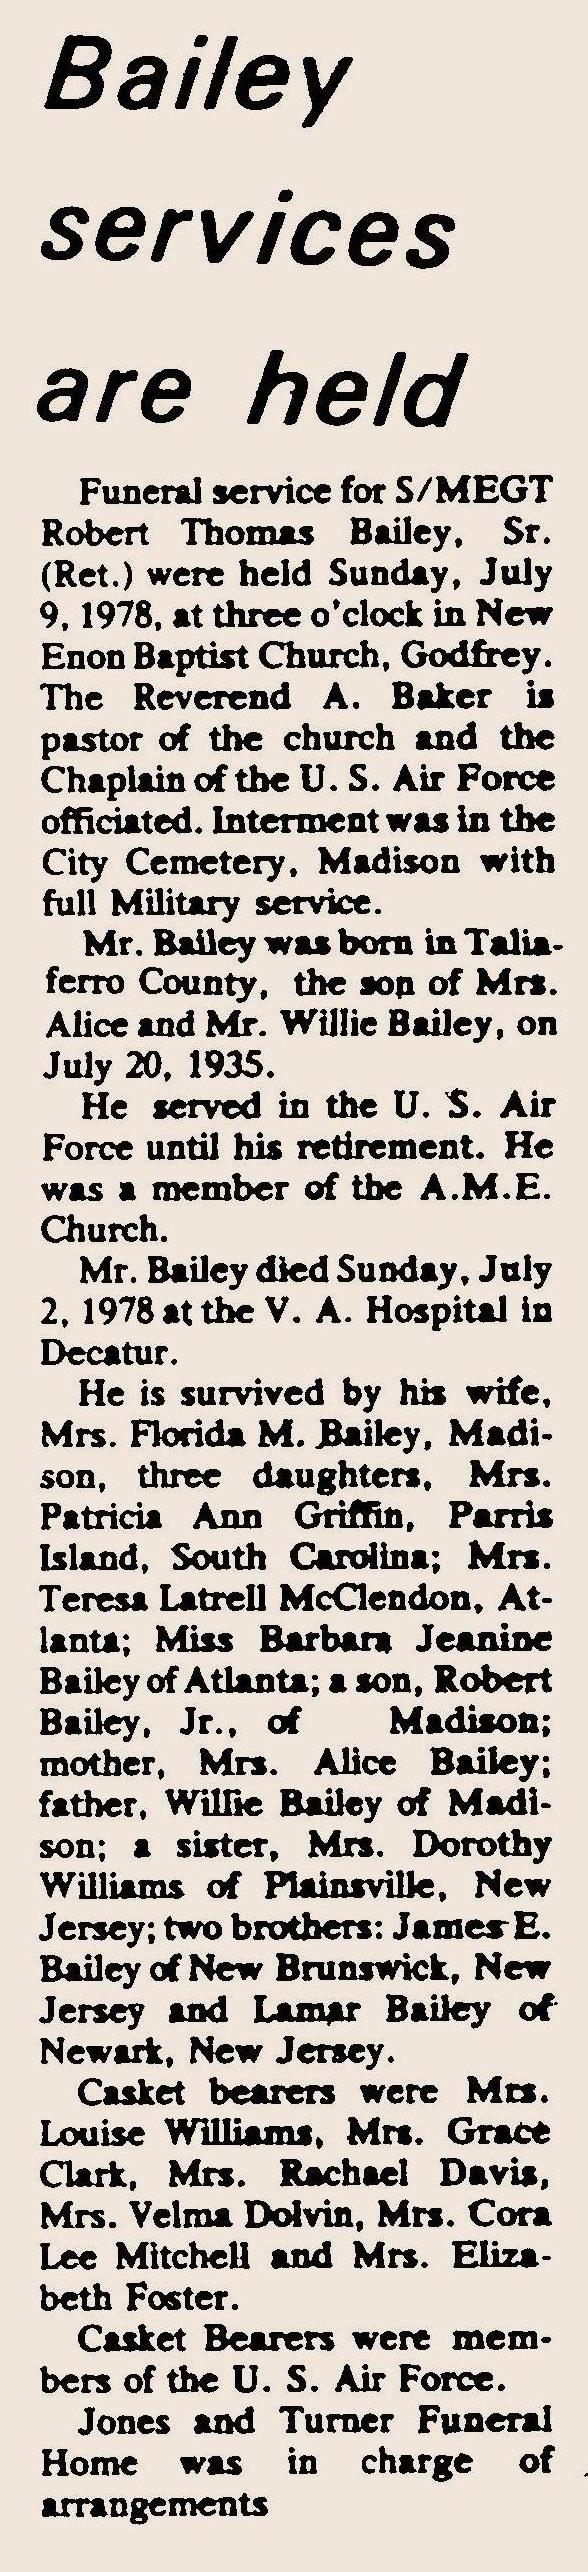 Obituary_BAILEY_RobertThomasSr-1978.jpeg